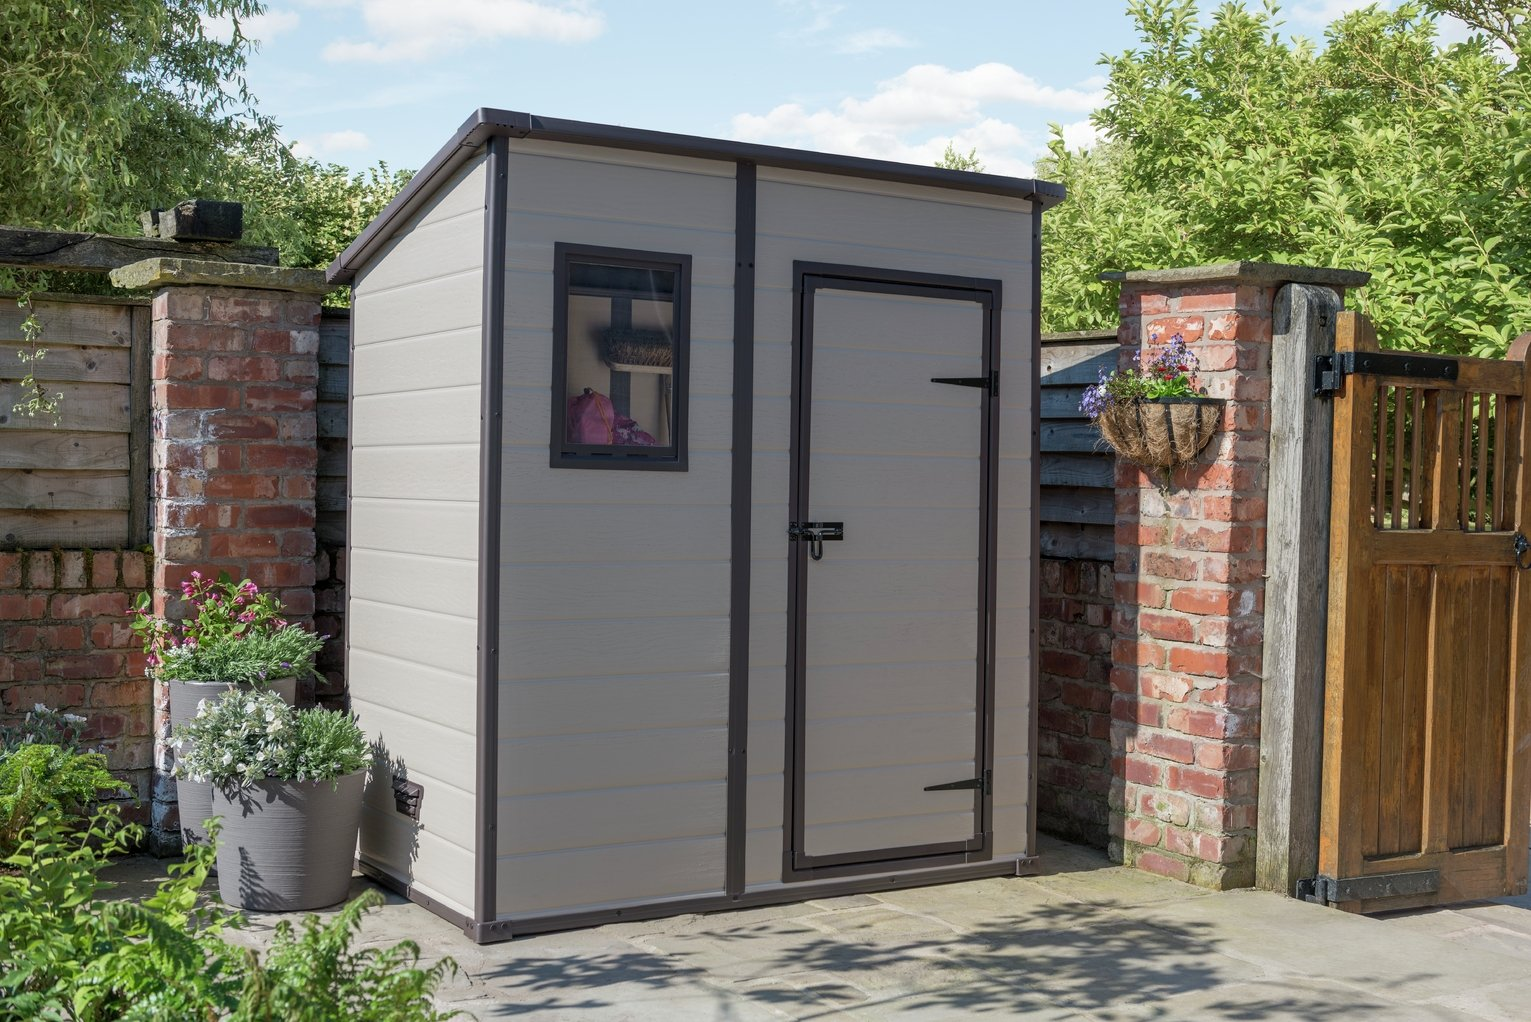 Garden Sheds 6x4 buy keter manor plastic beige & brown garden shed - 6 x 4ft at